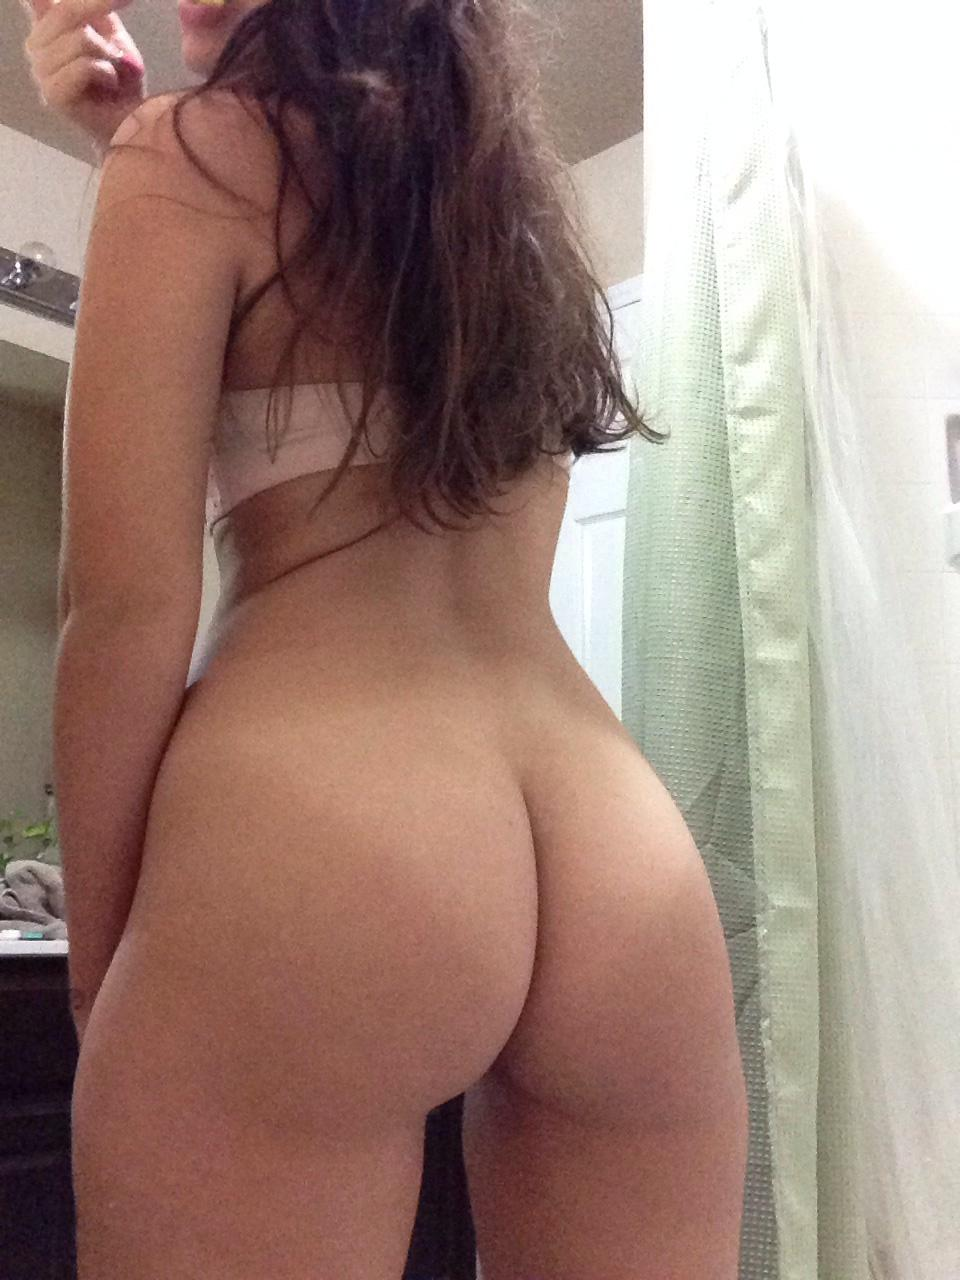 uncensored nude girl self pics